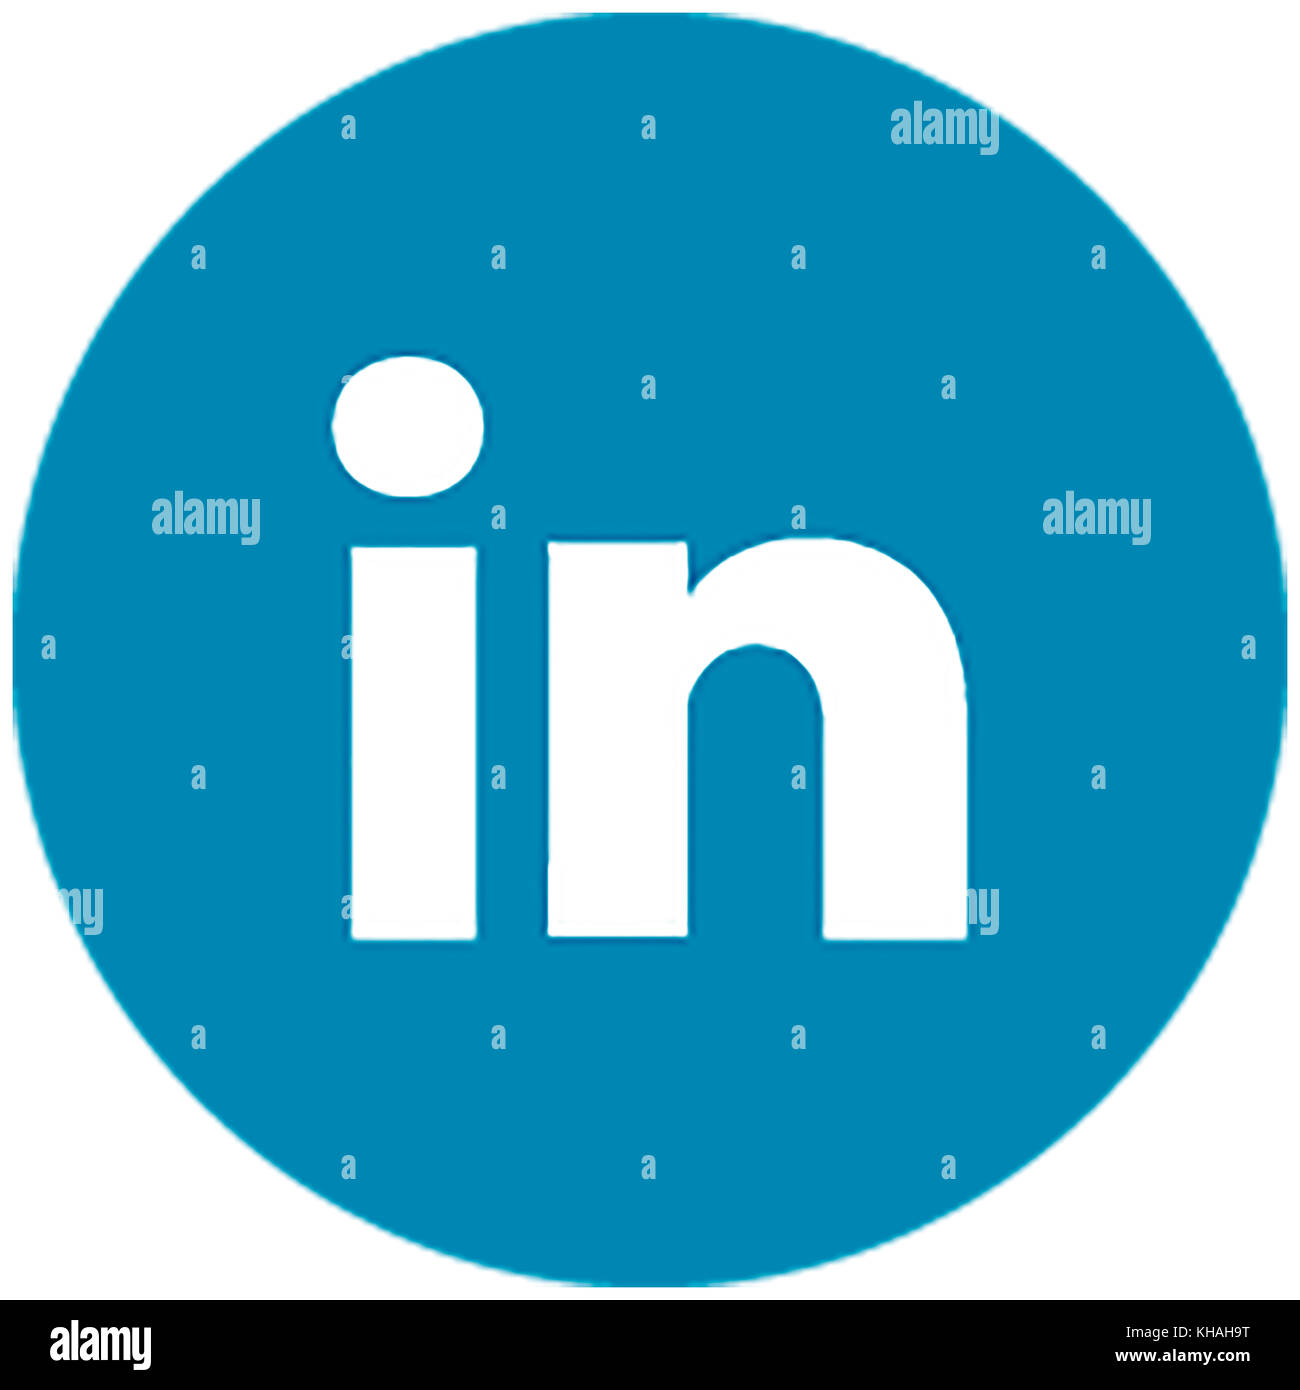 Linked-In Logo, Social Network for Business - Stock Image